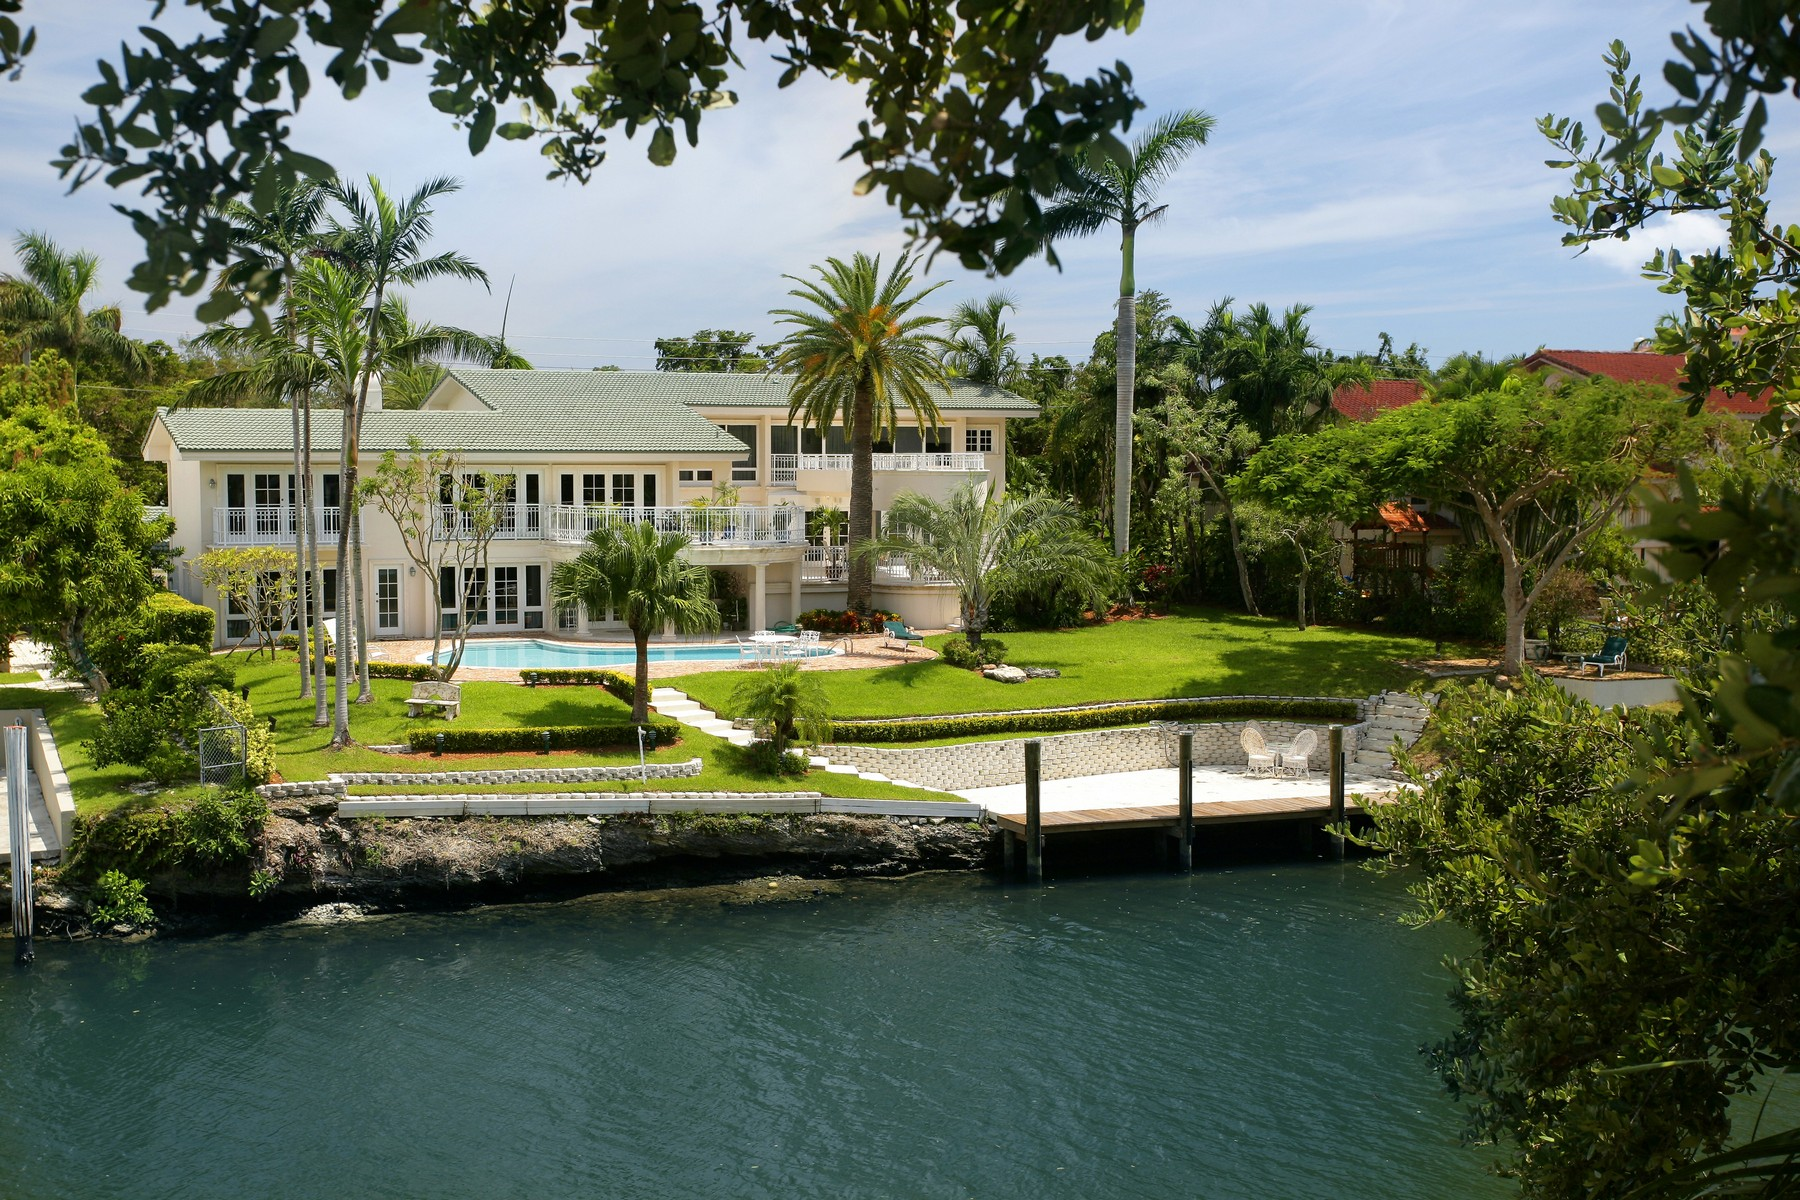 House for Sale at 6600 Riviera Drive Coral Gables, Florida 33146 United States